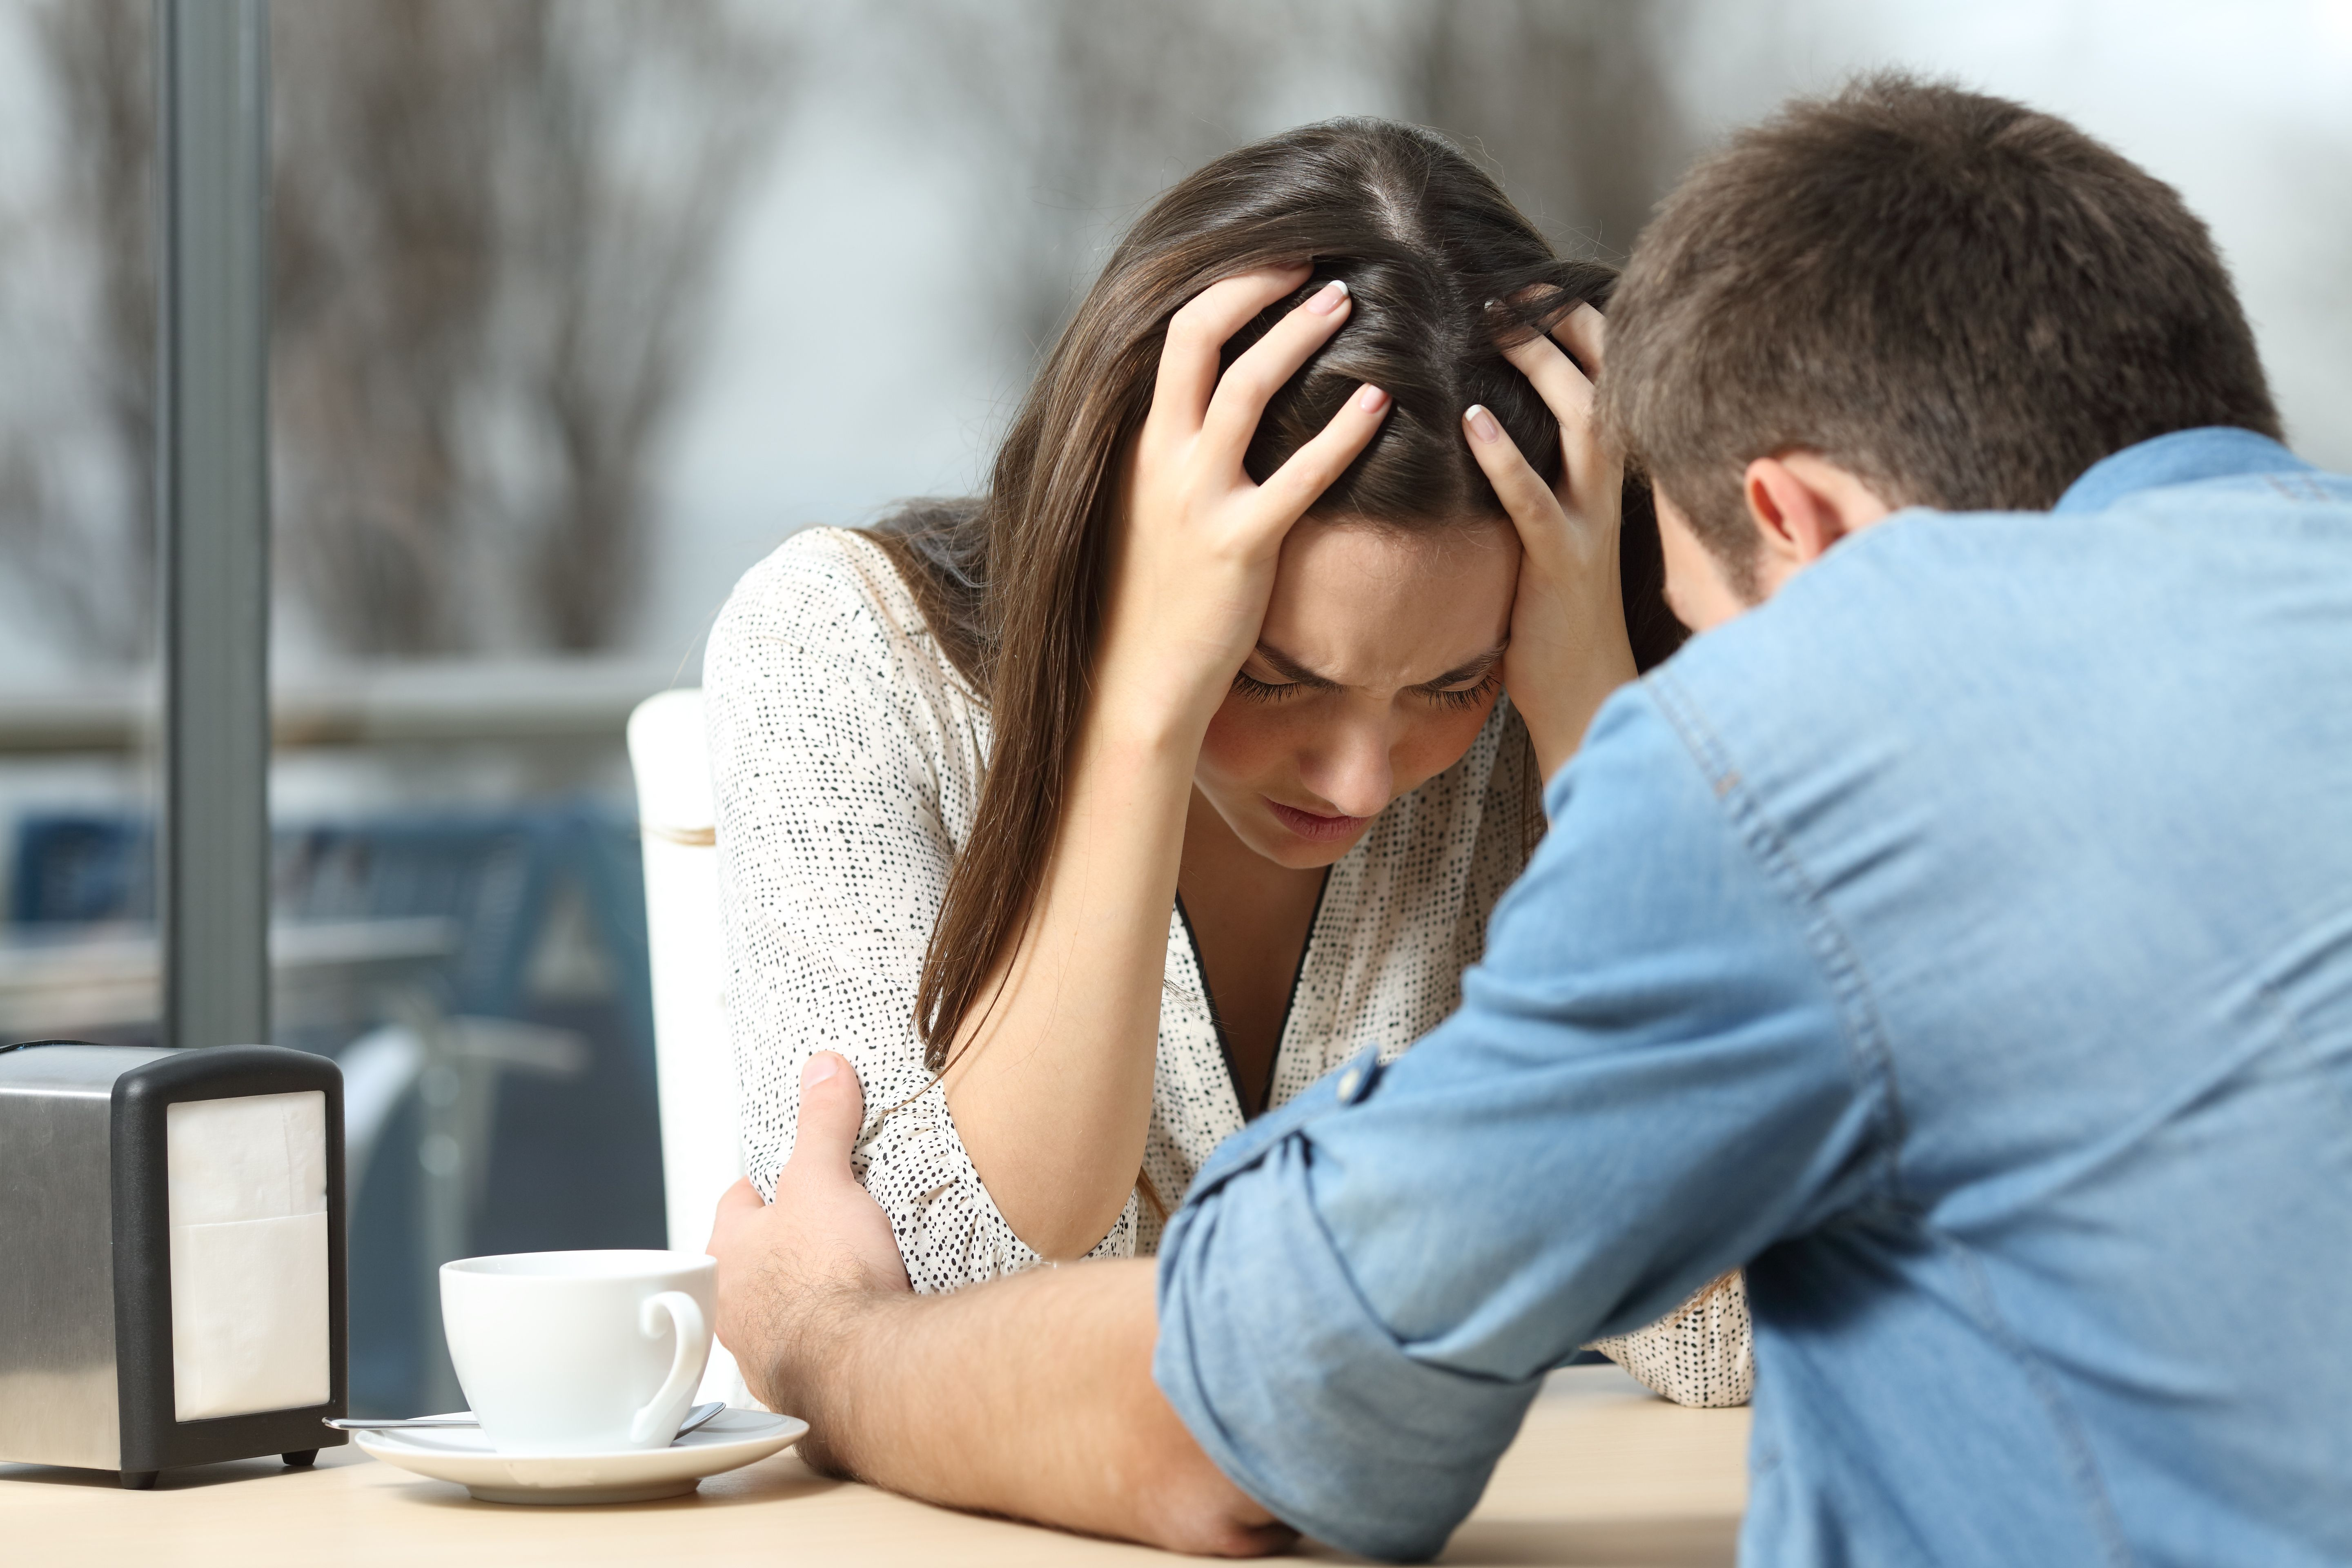 A man and a woman talking while upset.   Source: Shutterstock